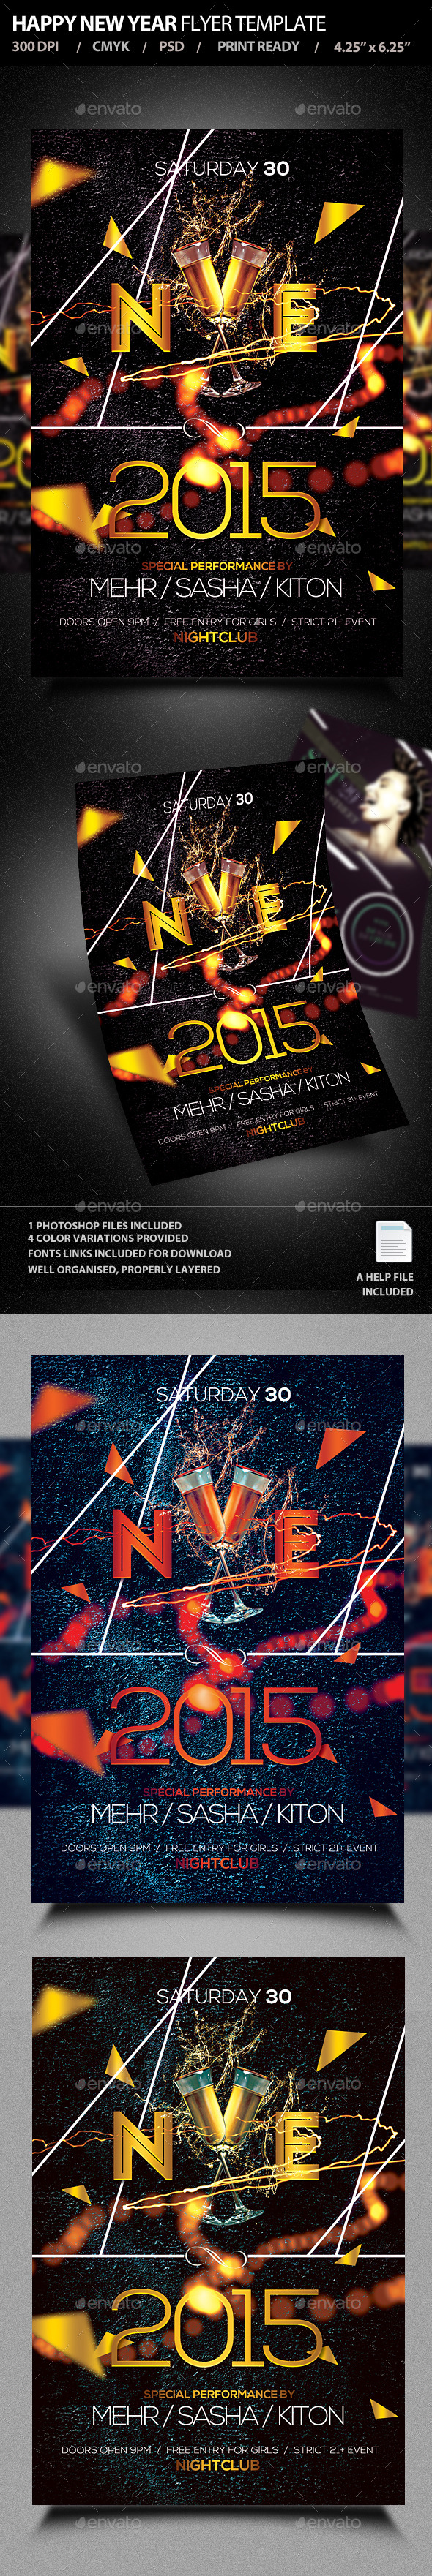 GraphicRiver Happy New Year Flyer Template PSD V3 9333712